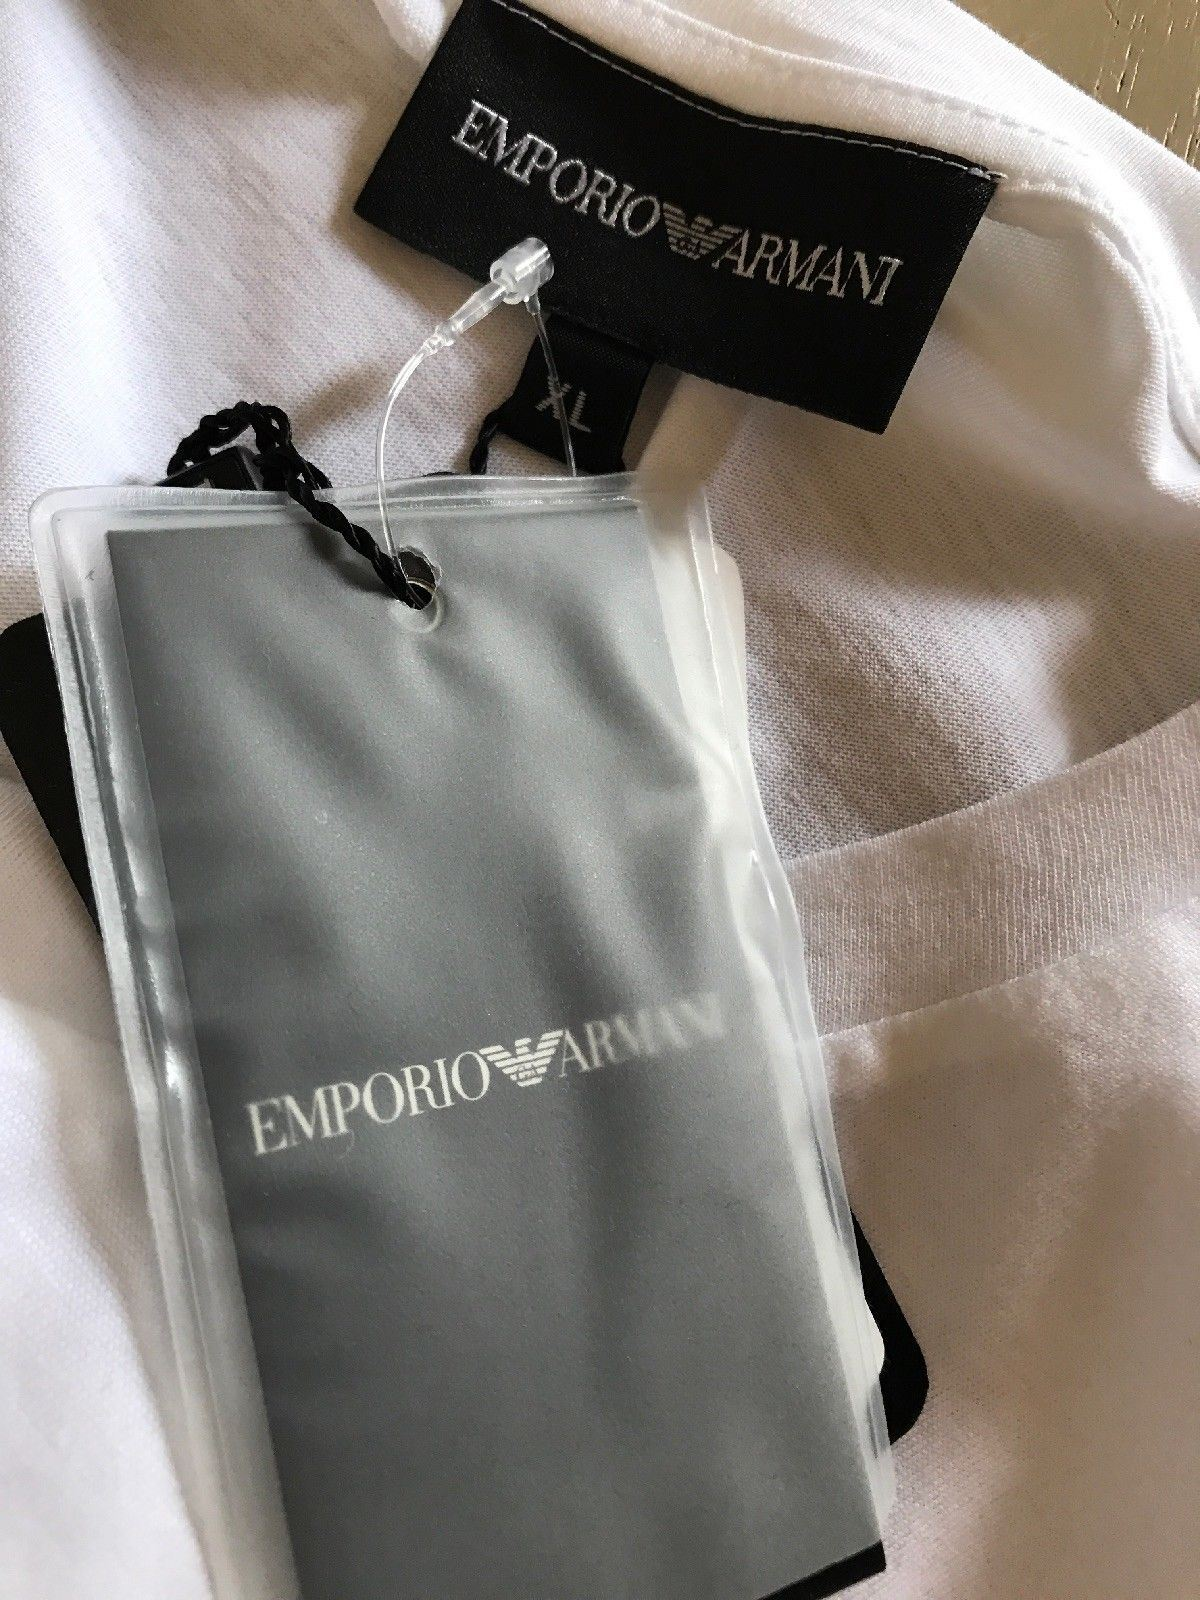 New $295 Emporio Armani Mens T Shirt White Size XXL